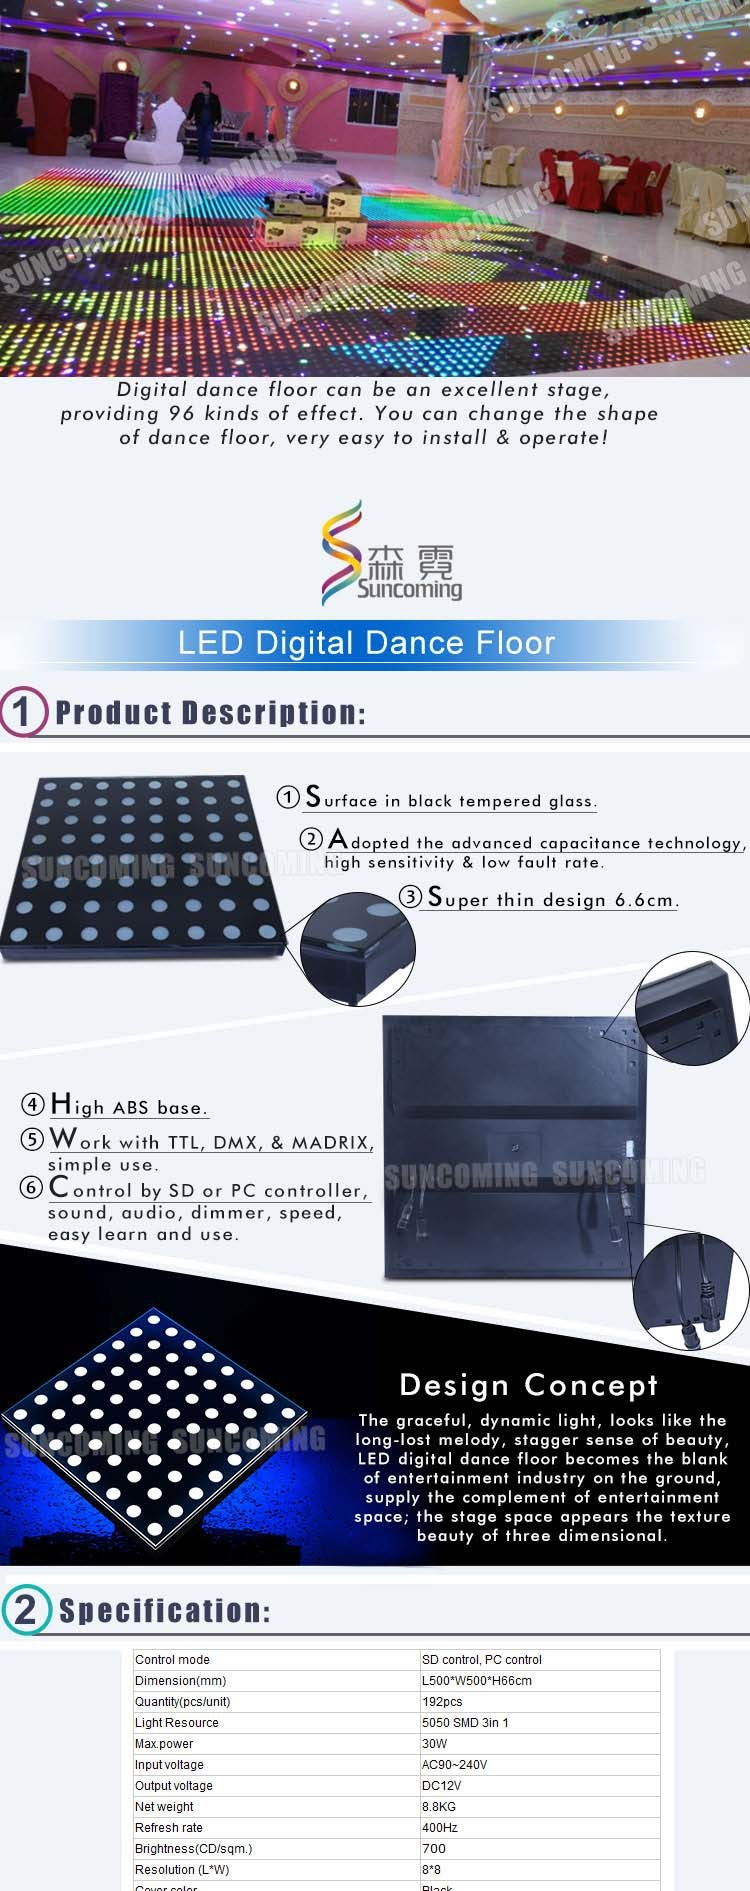 Unique efftecs for kidsgarden disco led interactive dance floor to fix the dance floors both easy install and disassemble no need of professional workers or even hiring a labor you can do it by yourself solutioingenieria Images